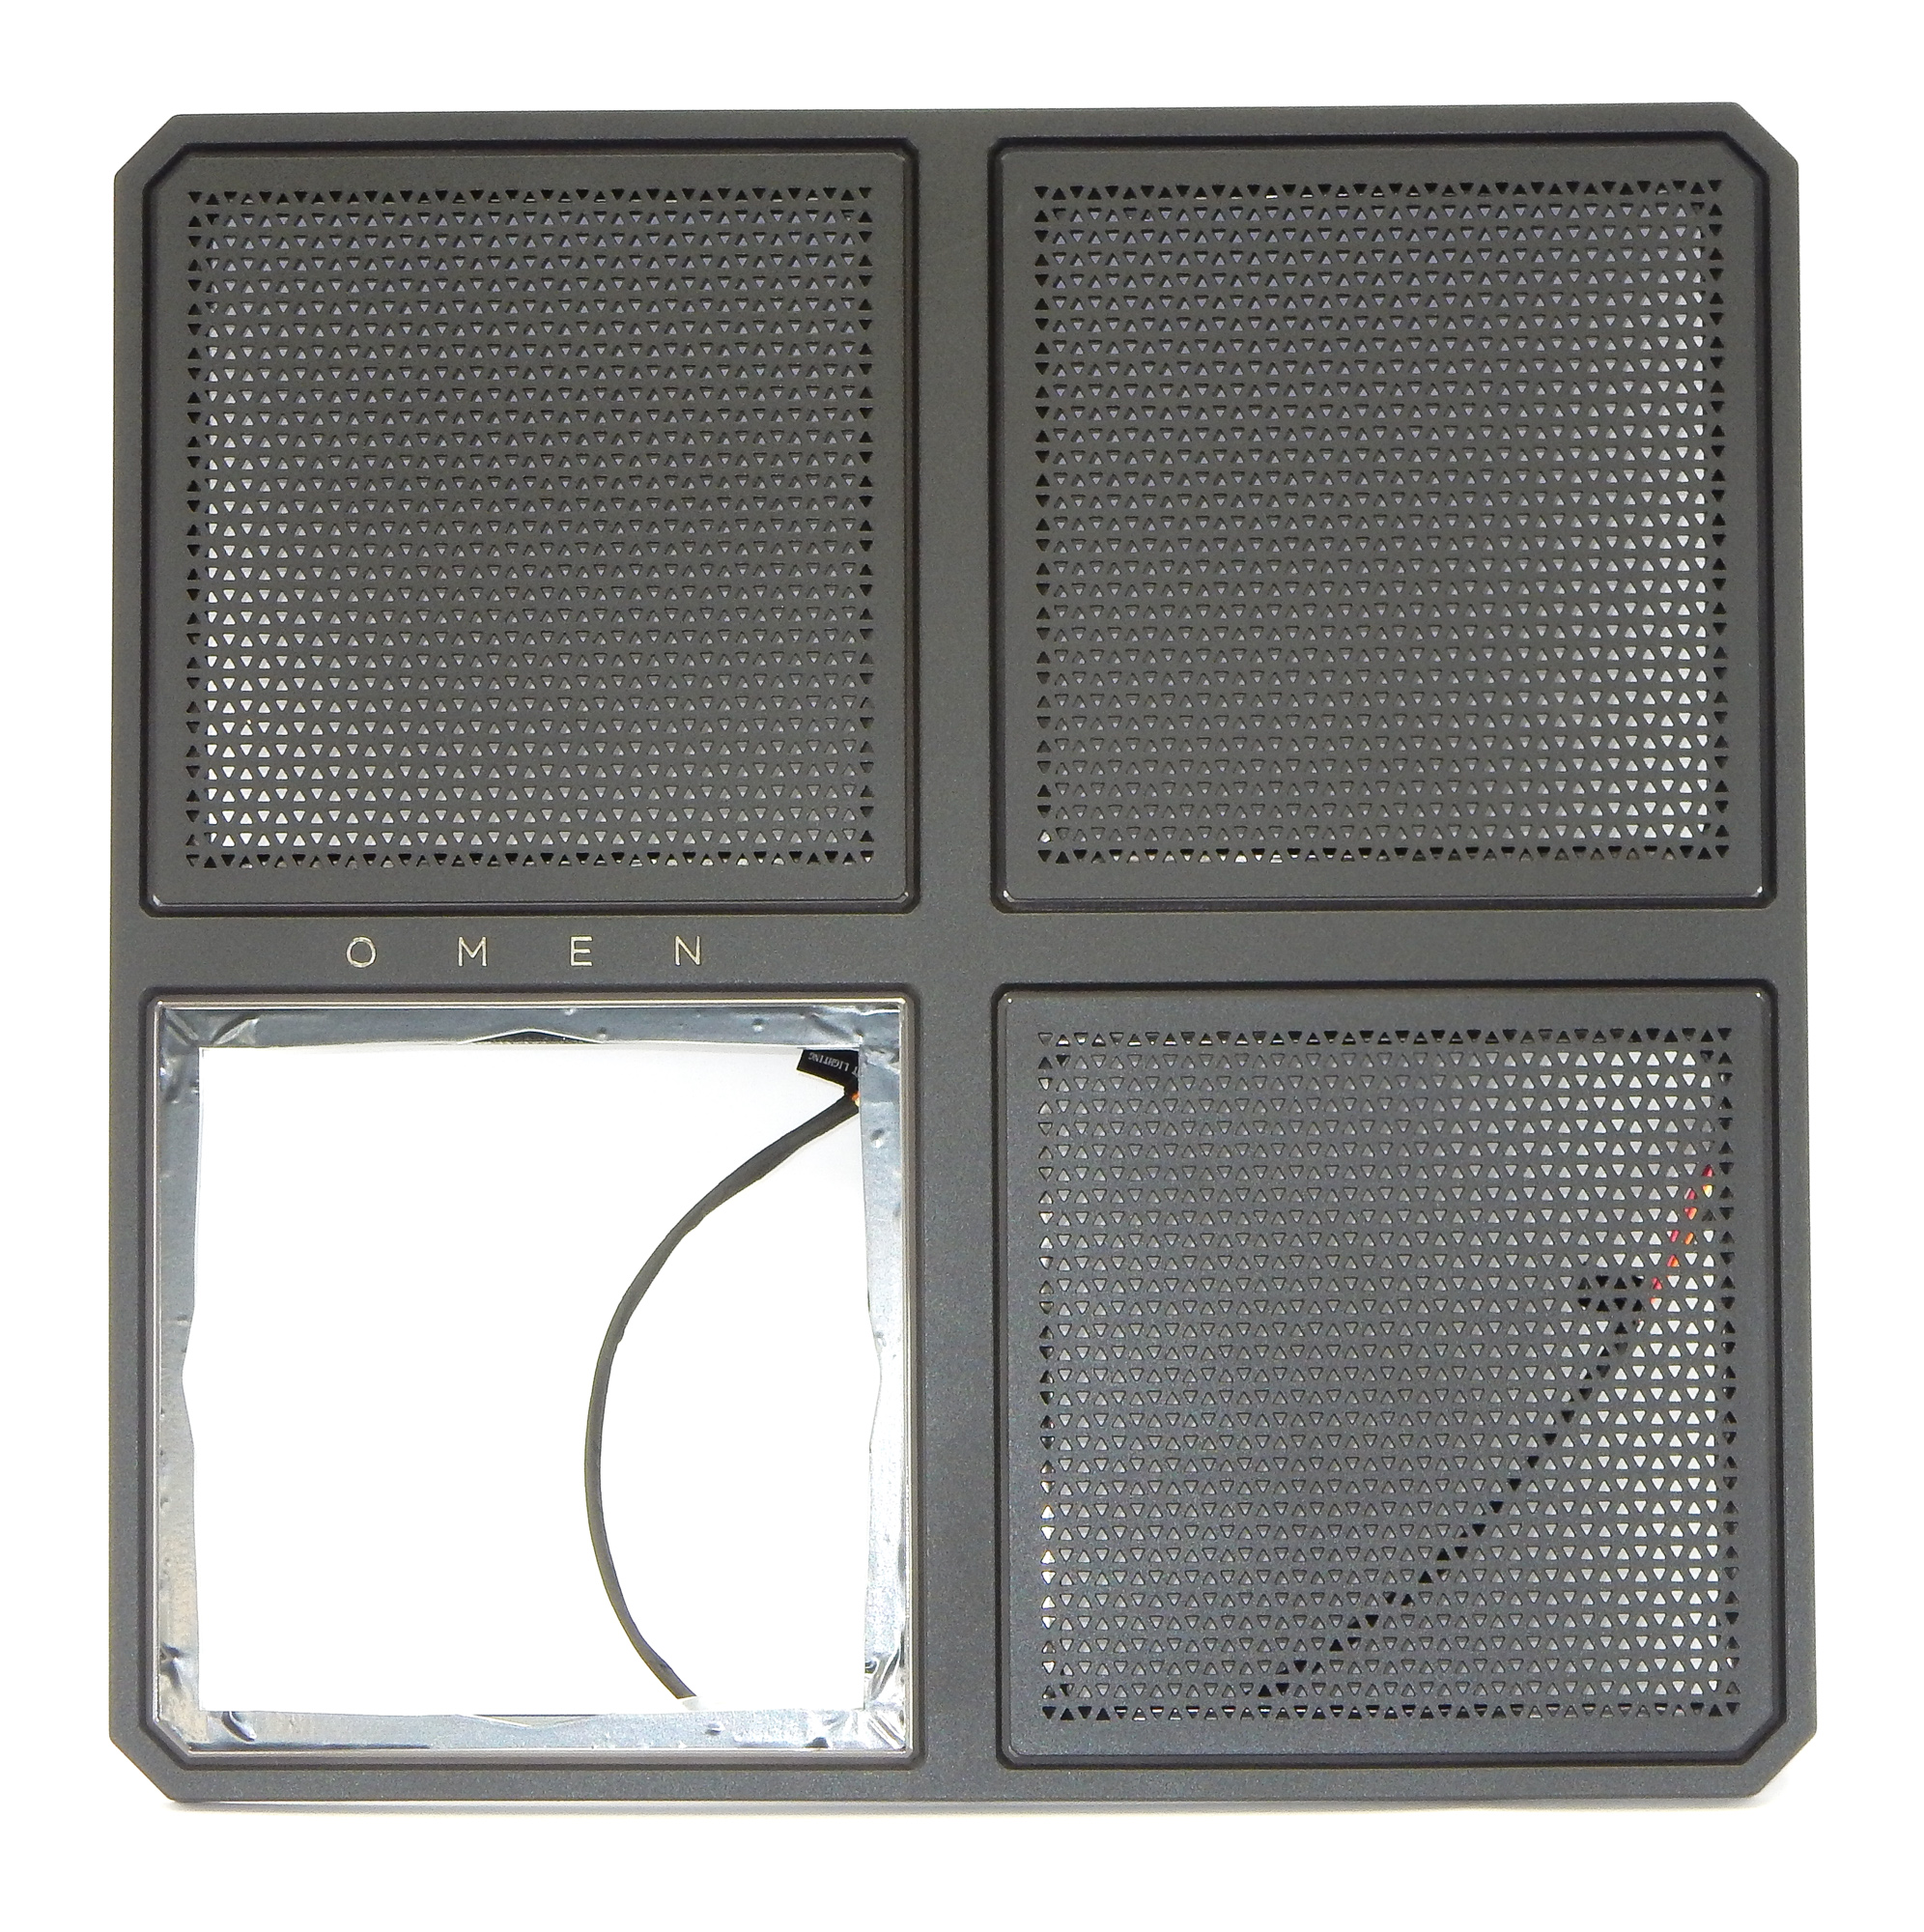 HP 905883-002 Omen X 900 Case Front Panel With Lighting